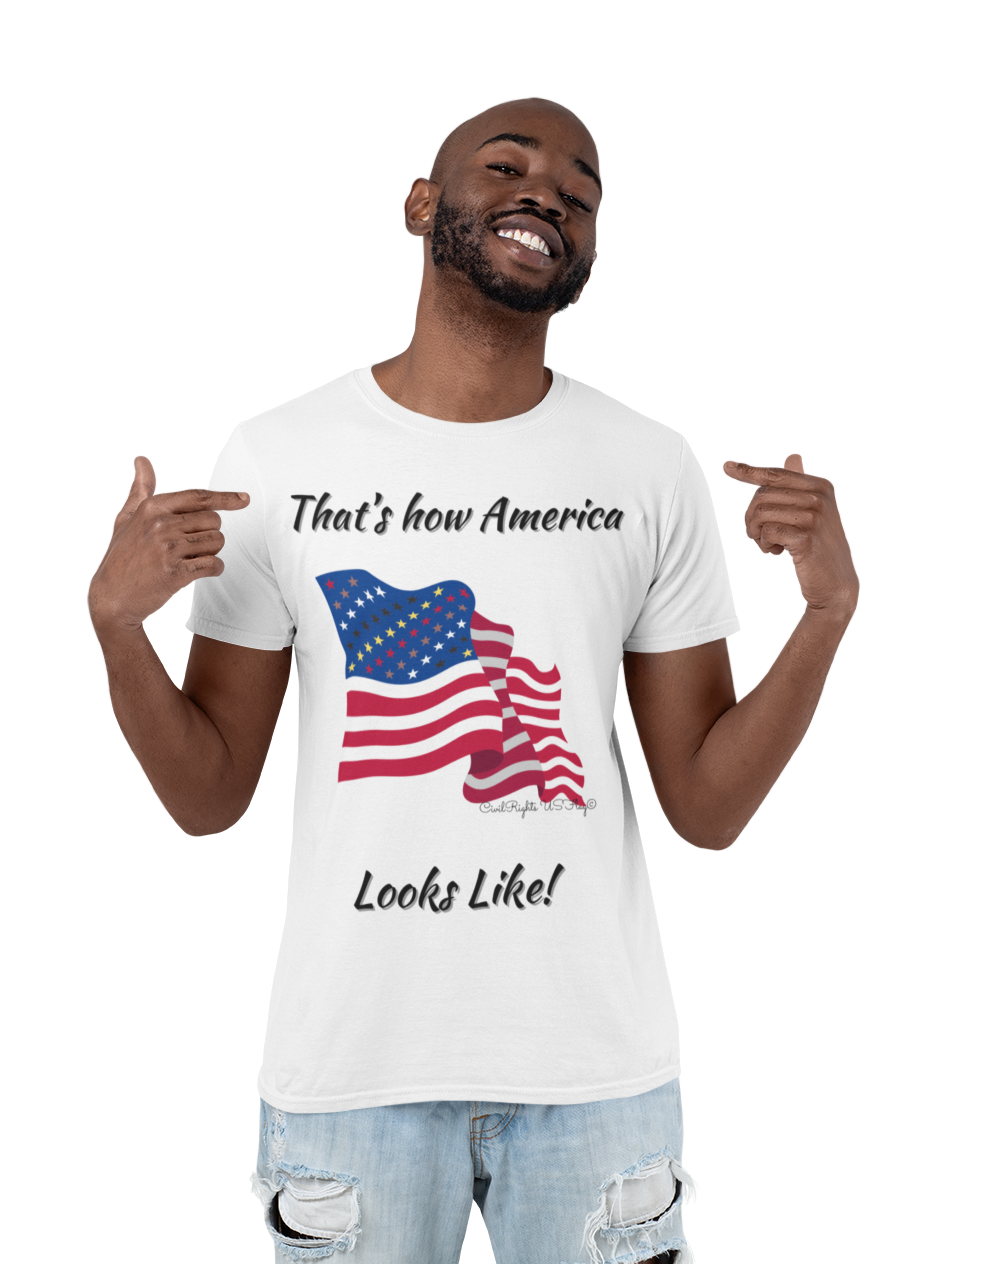 Civil Rights US Flag Eco friendly T-Sirt